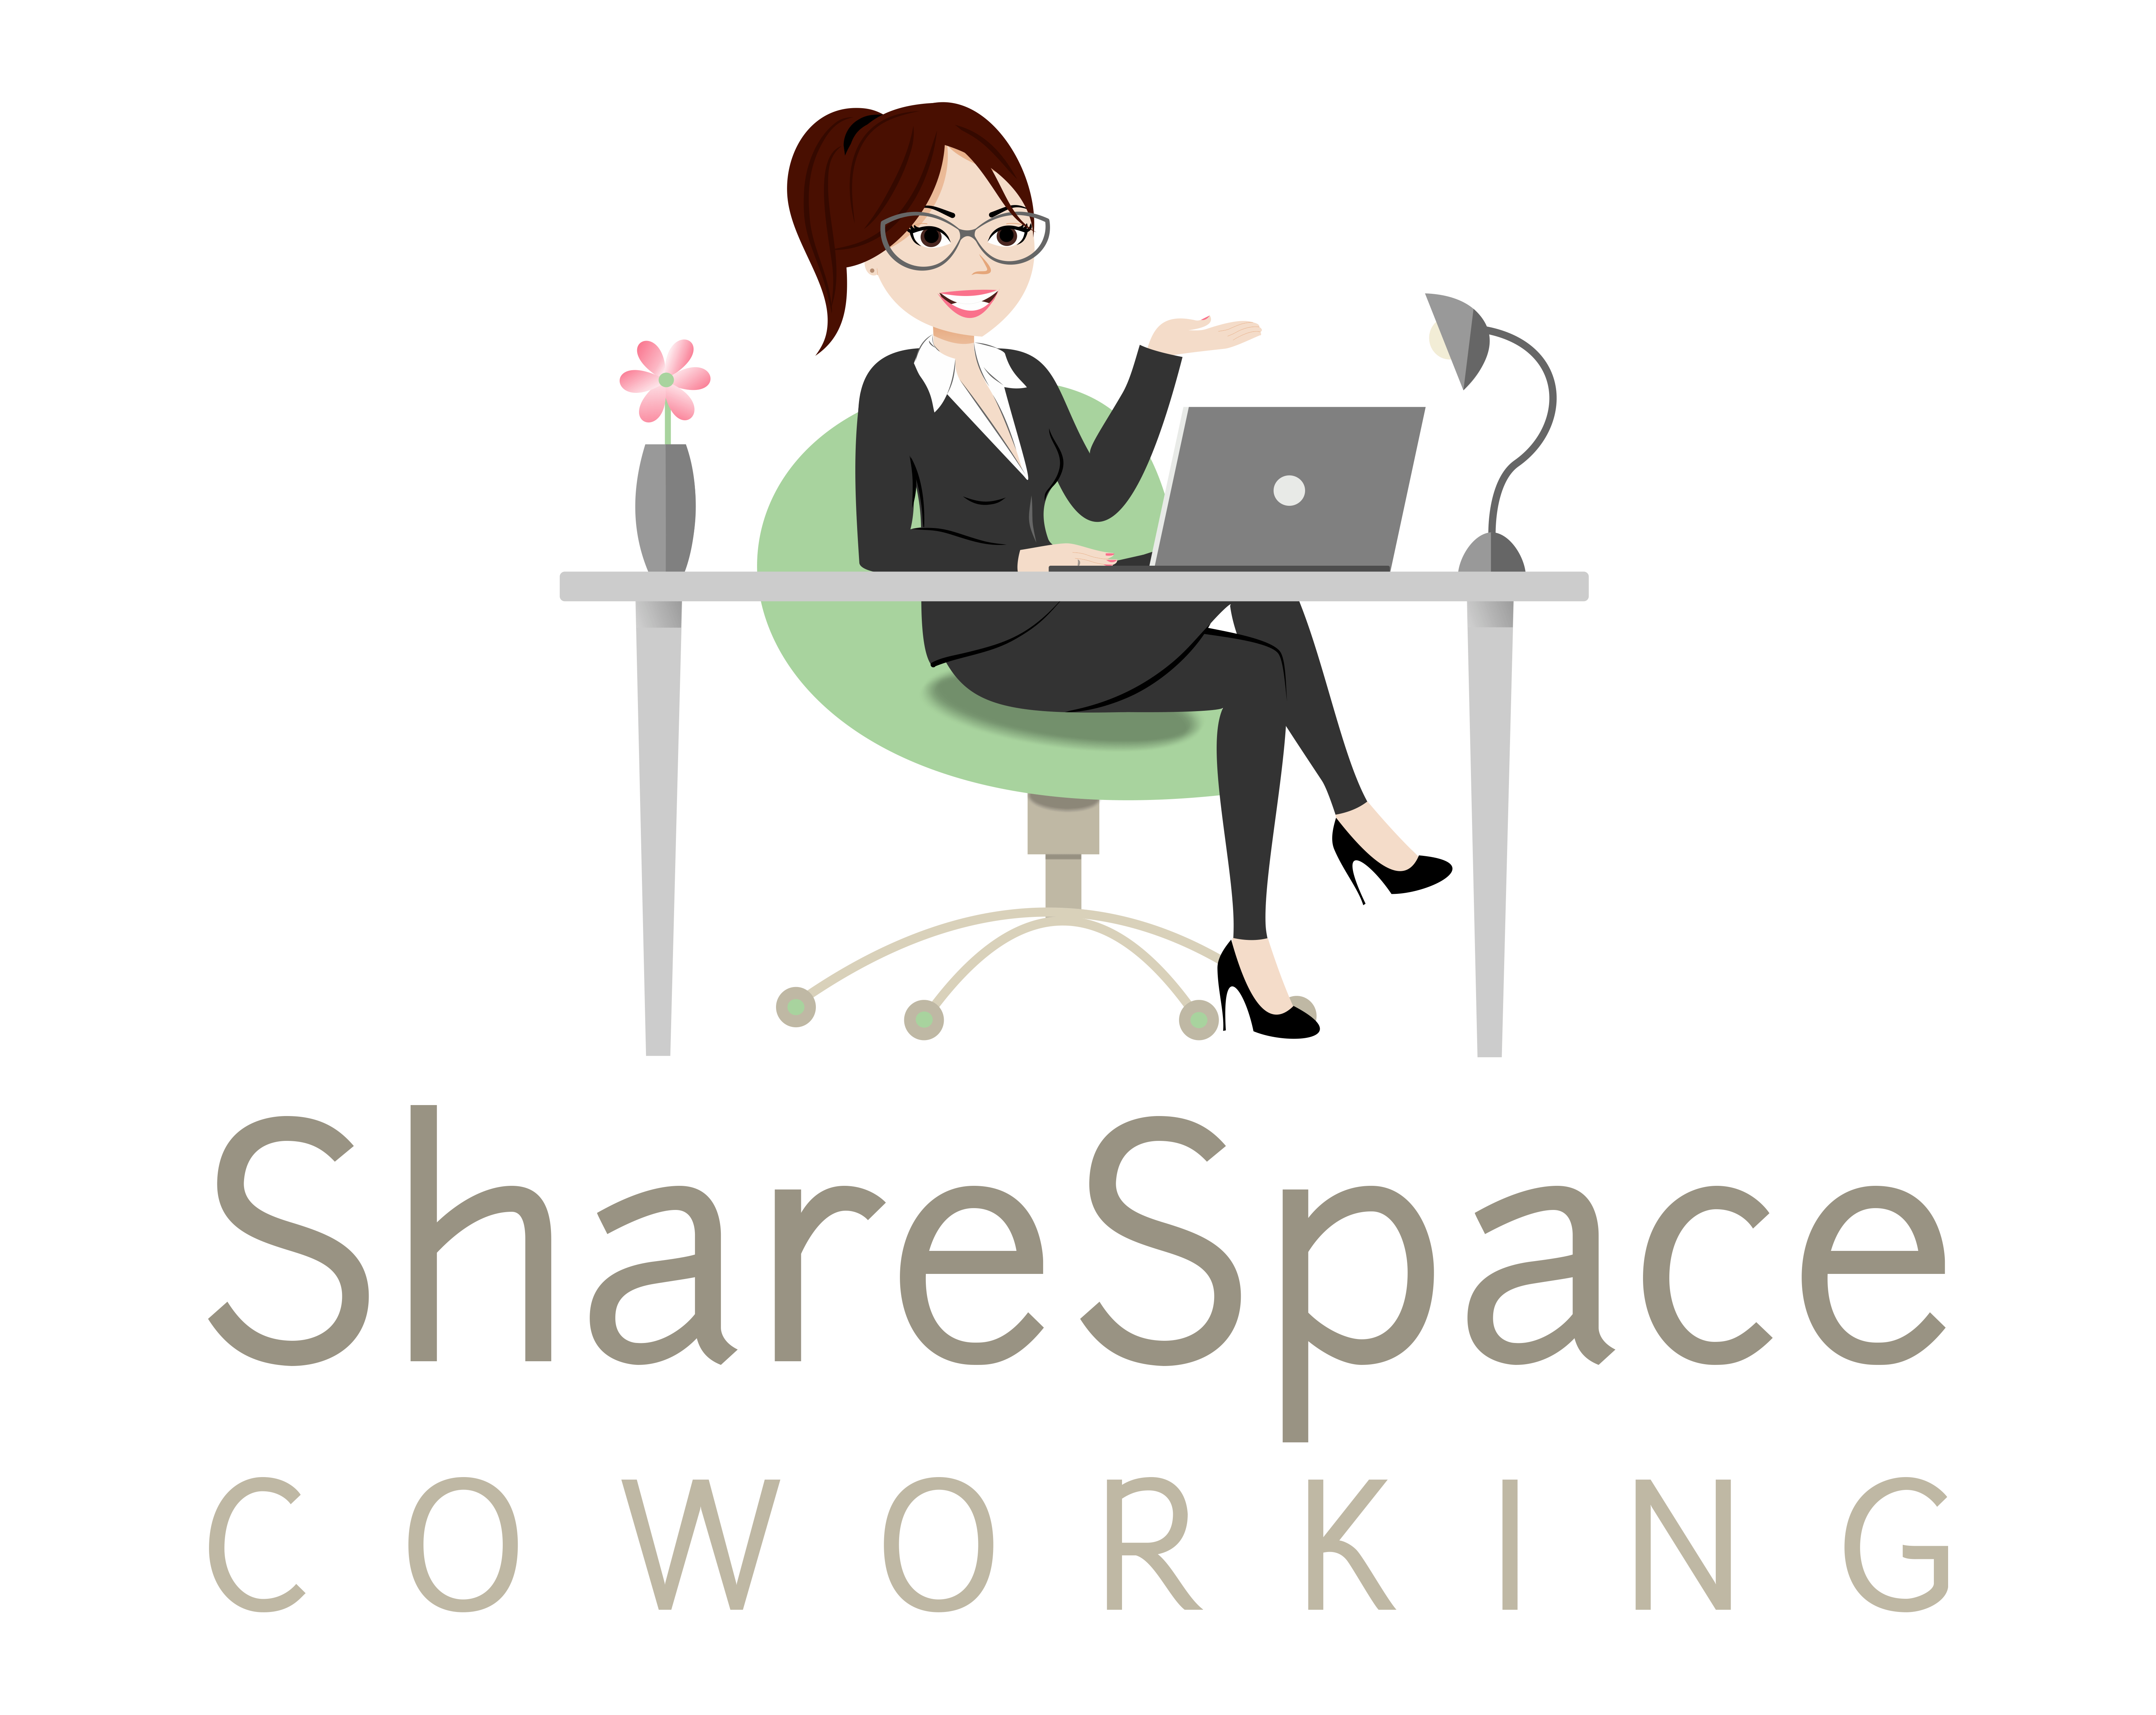 ShareSpace Coworking